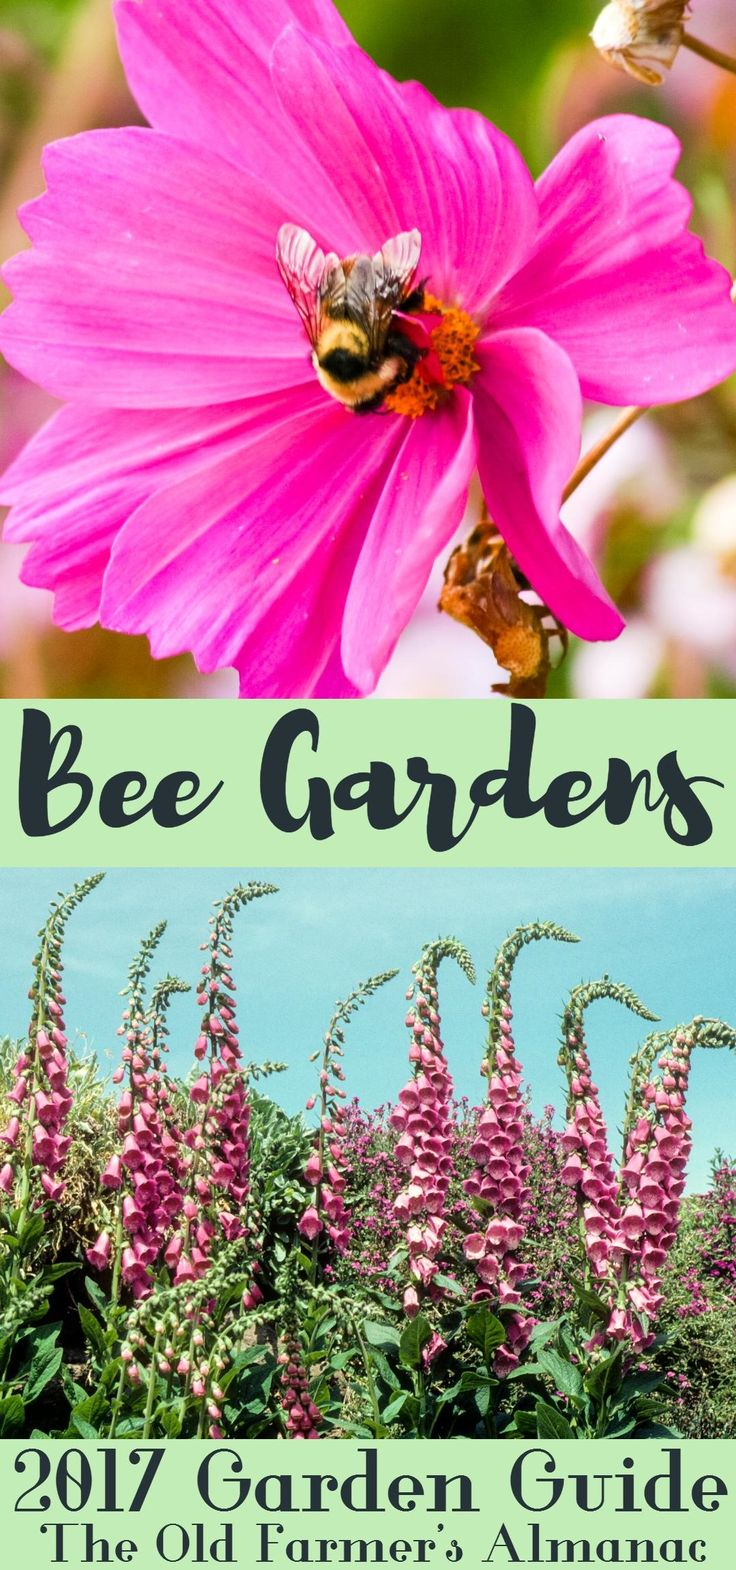 120 best 2017 garden guide images on pinterest | garden guide